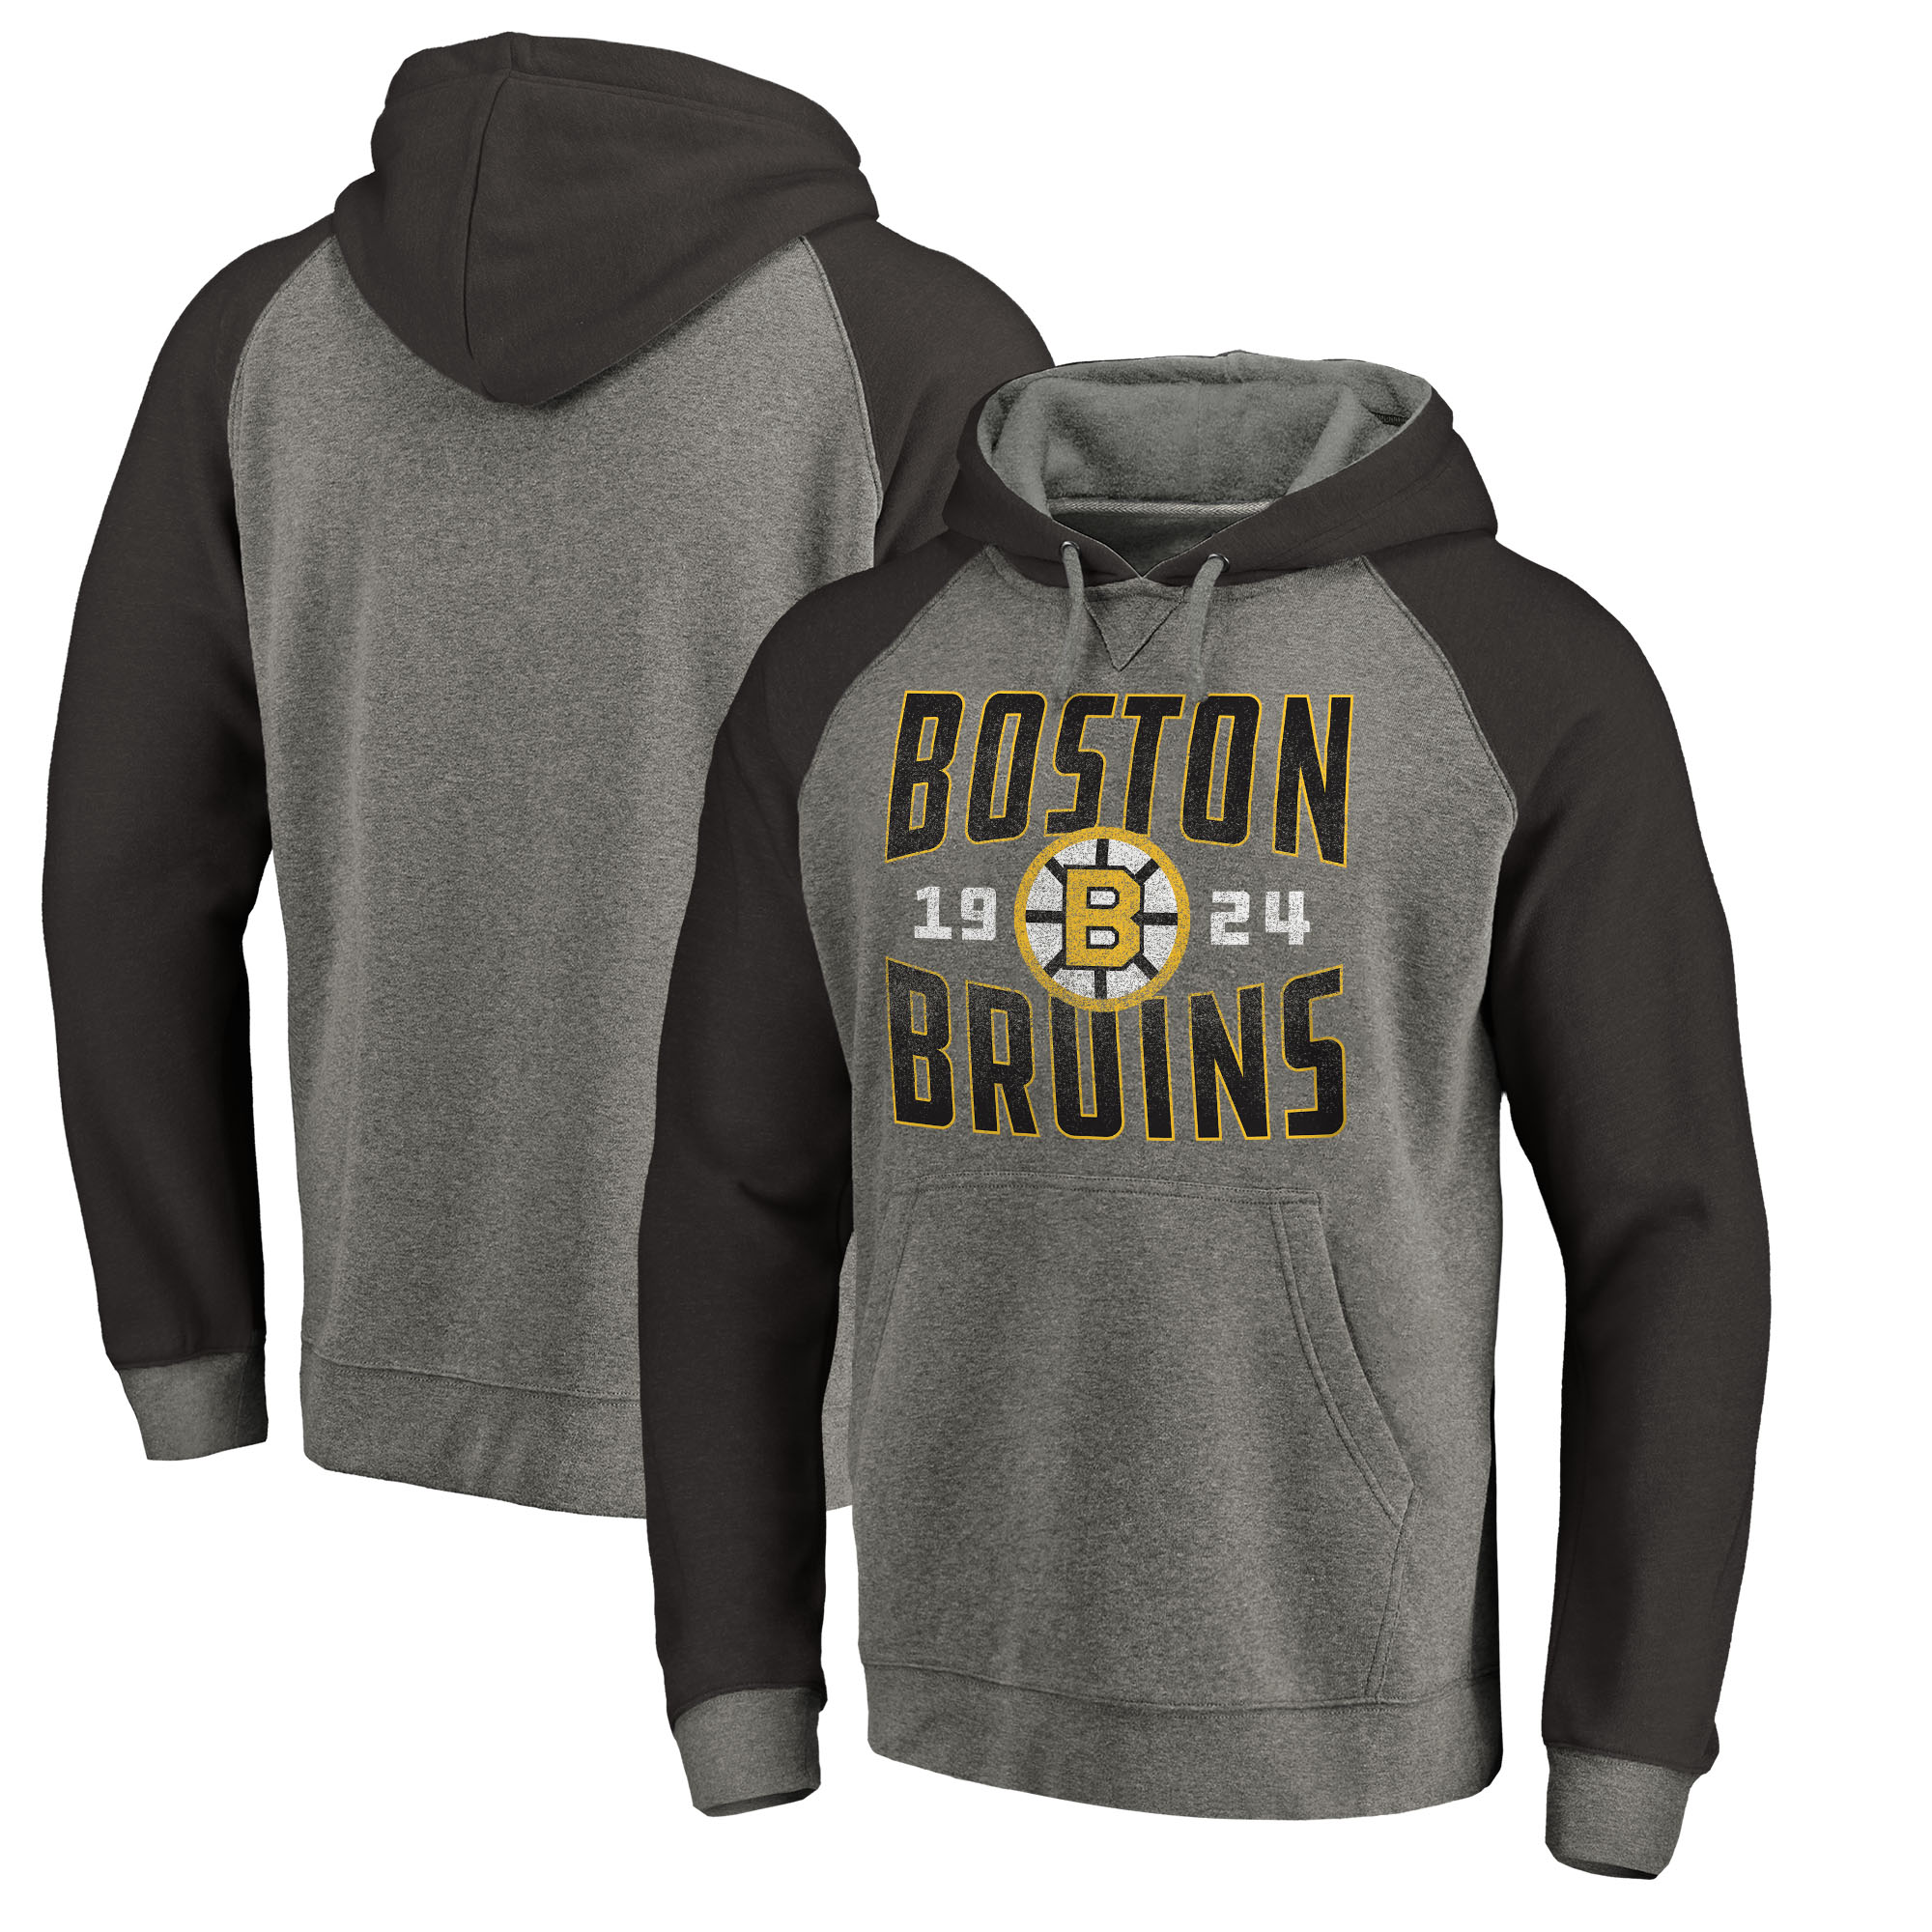 Boston Bruins Fanatics Branded Timeless Collection Antique Stack Tri-Blend Raglan Pullover Hoodie - Ash